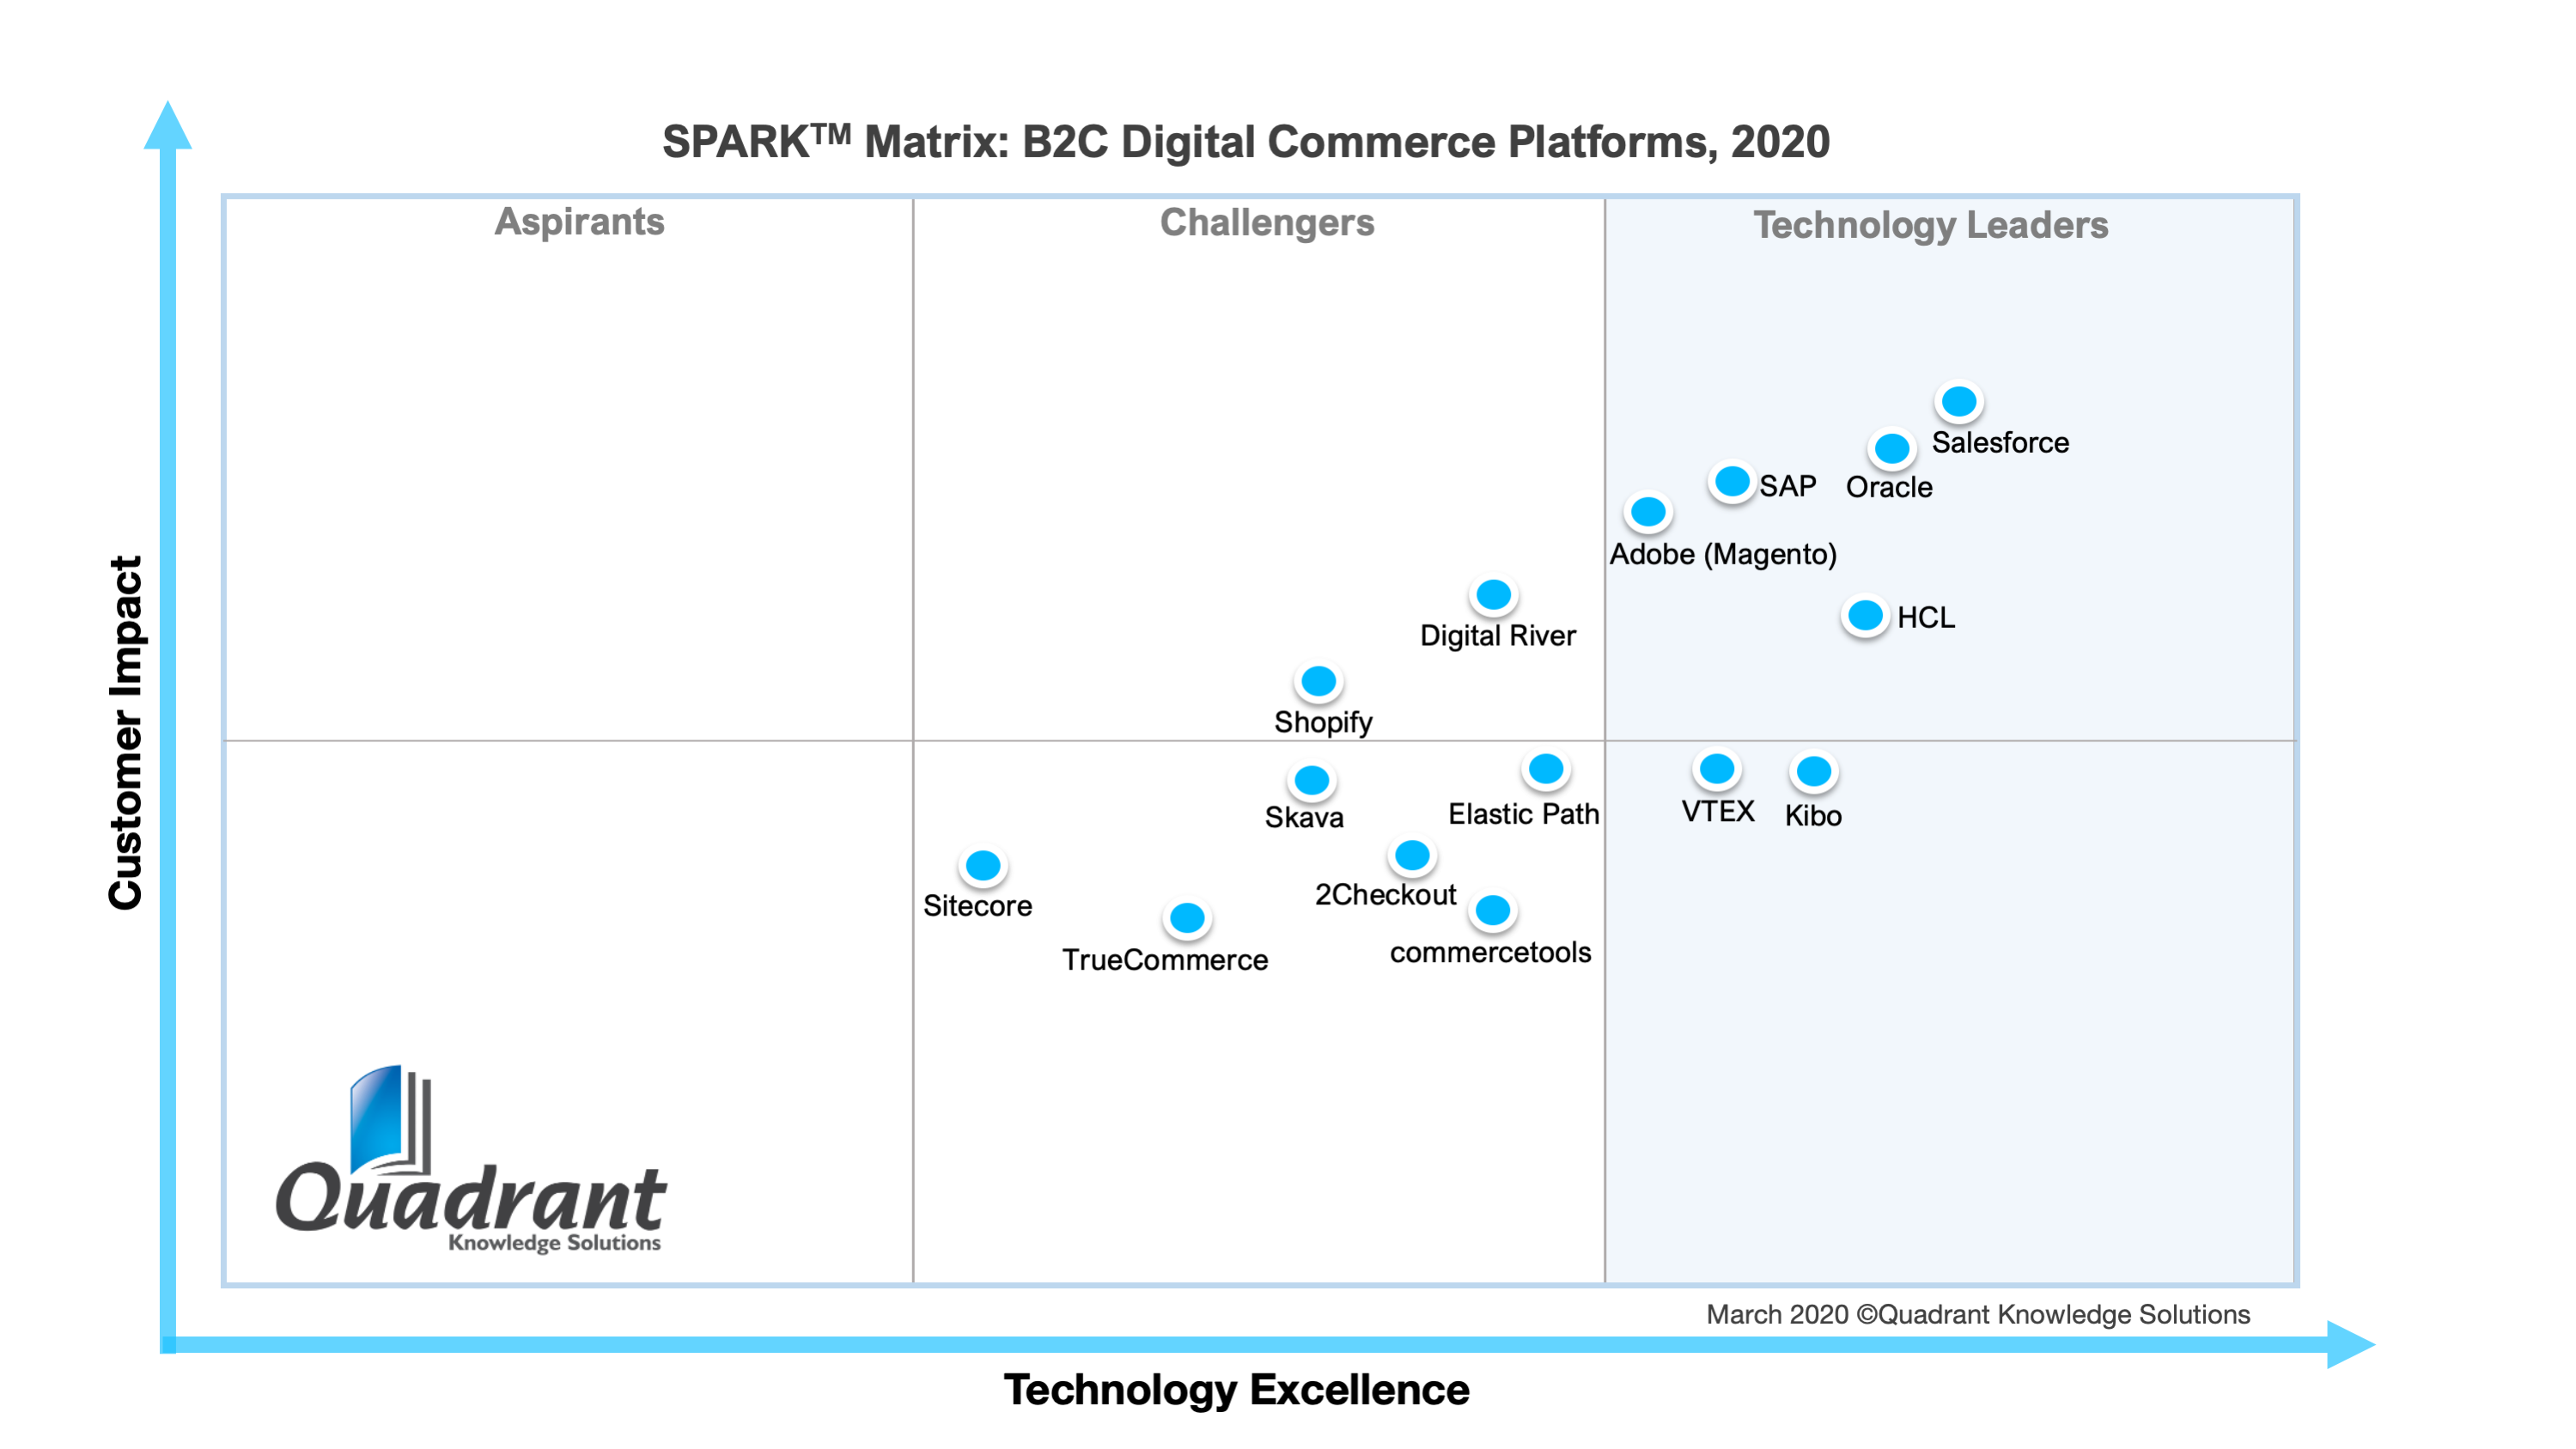 2020 SPARK Matrix of B2C Digital Commerce Platforms by Quadrant Knowledge Solutions